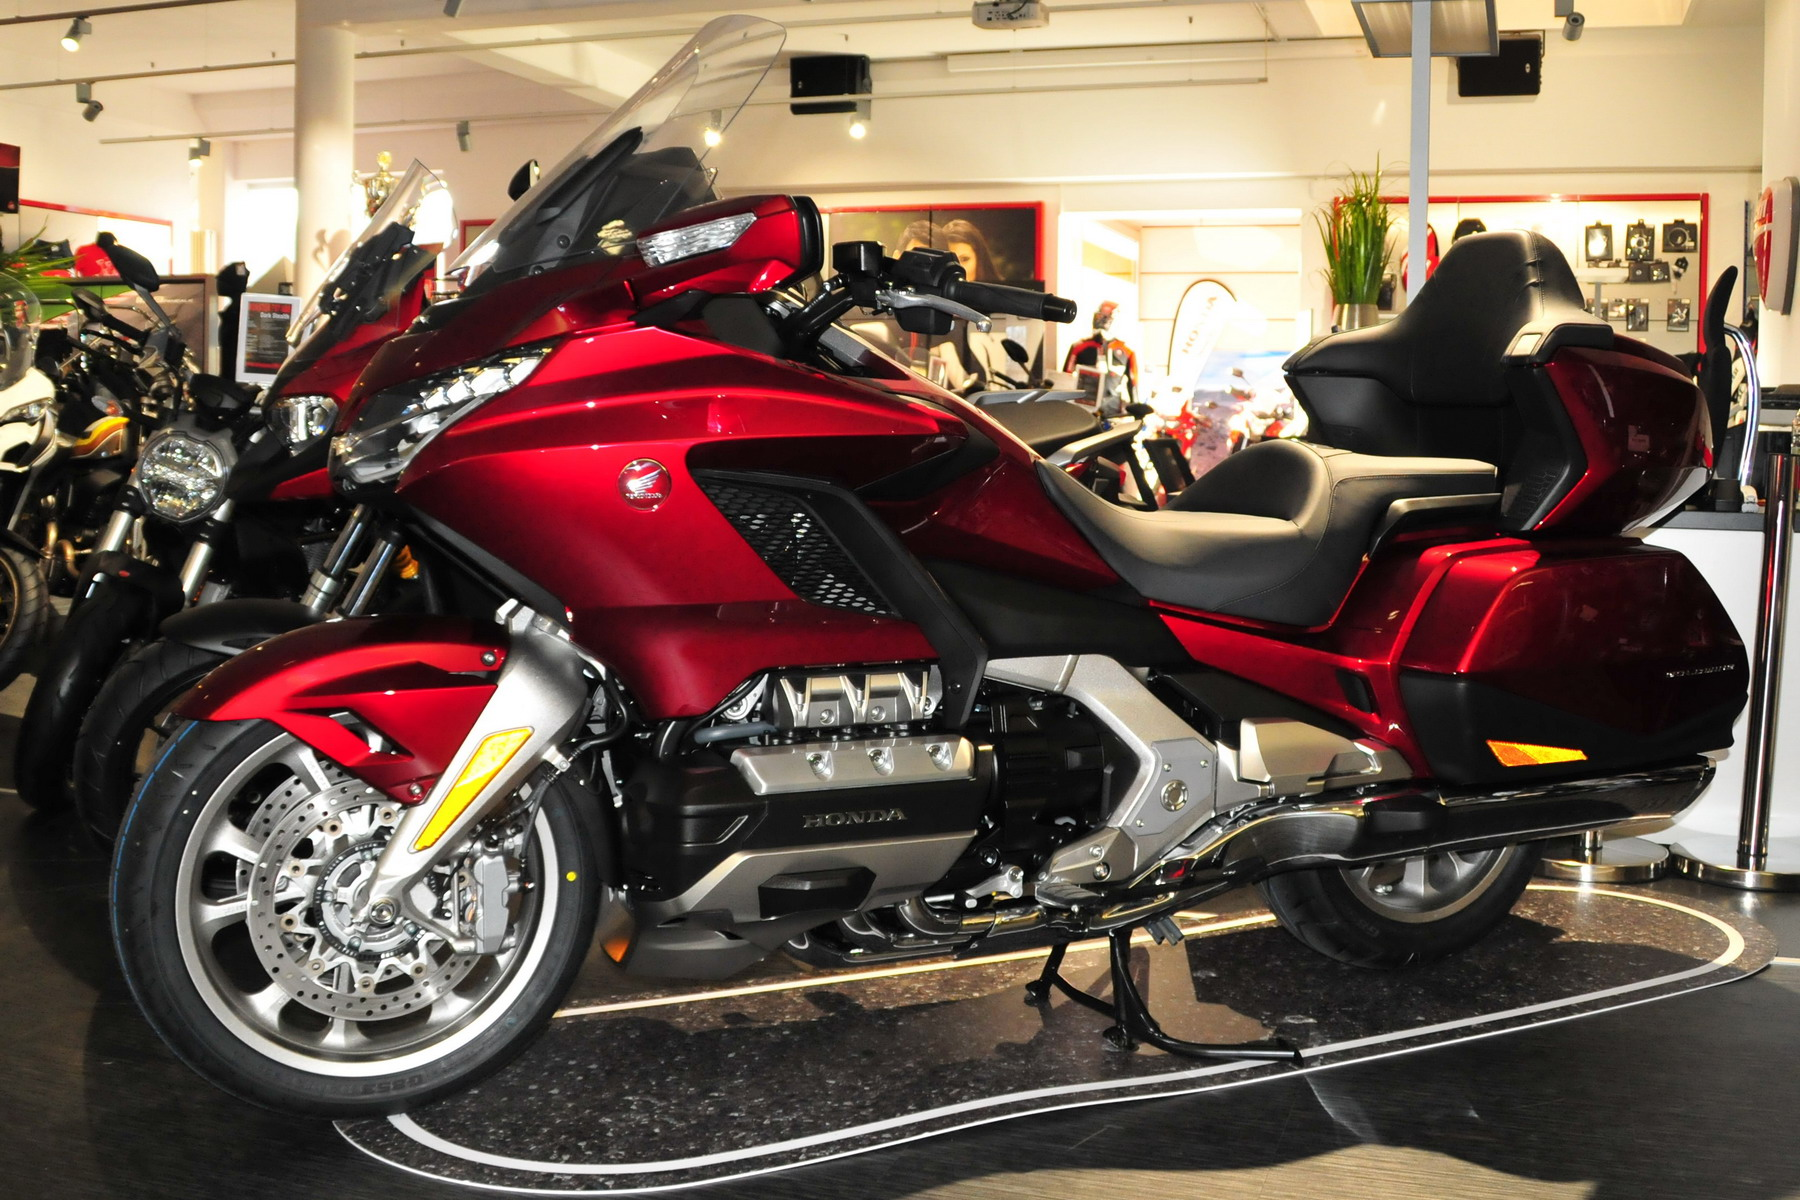 Honda Goldwing GL1800 Price in Pakistan 2021 Specs Features Mileage